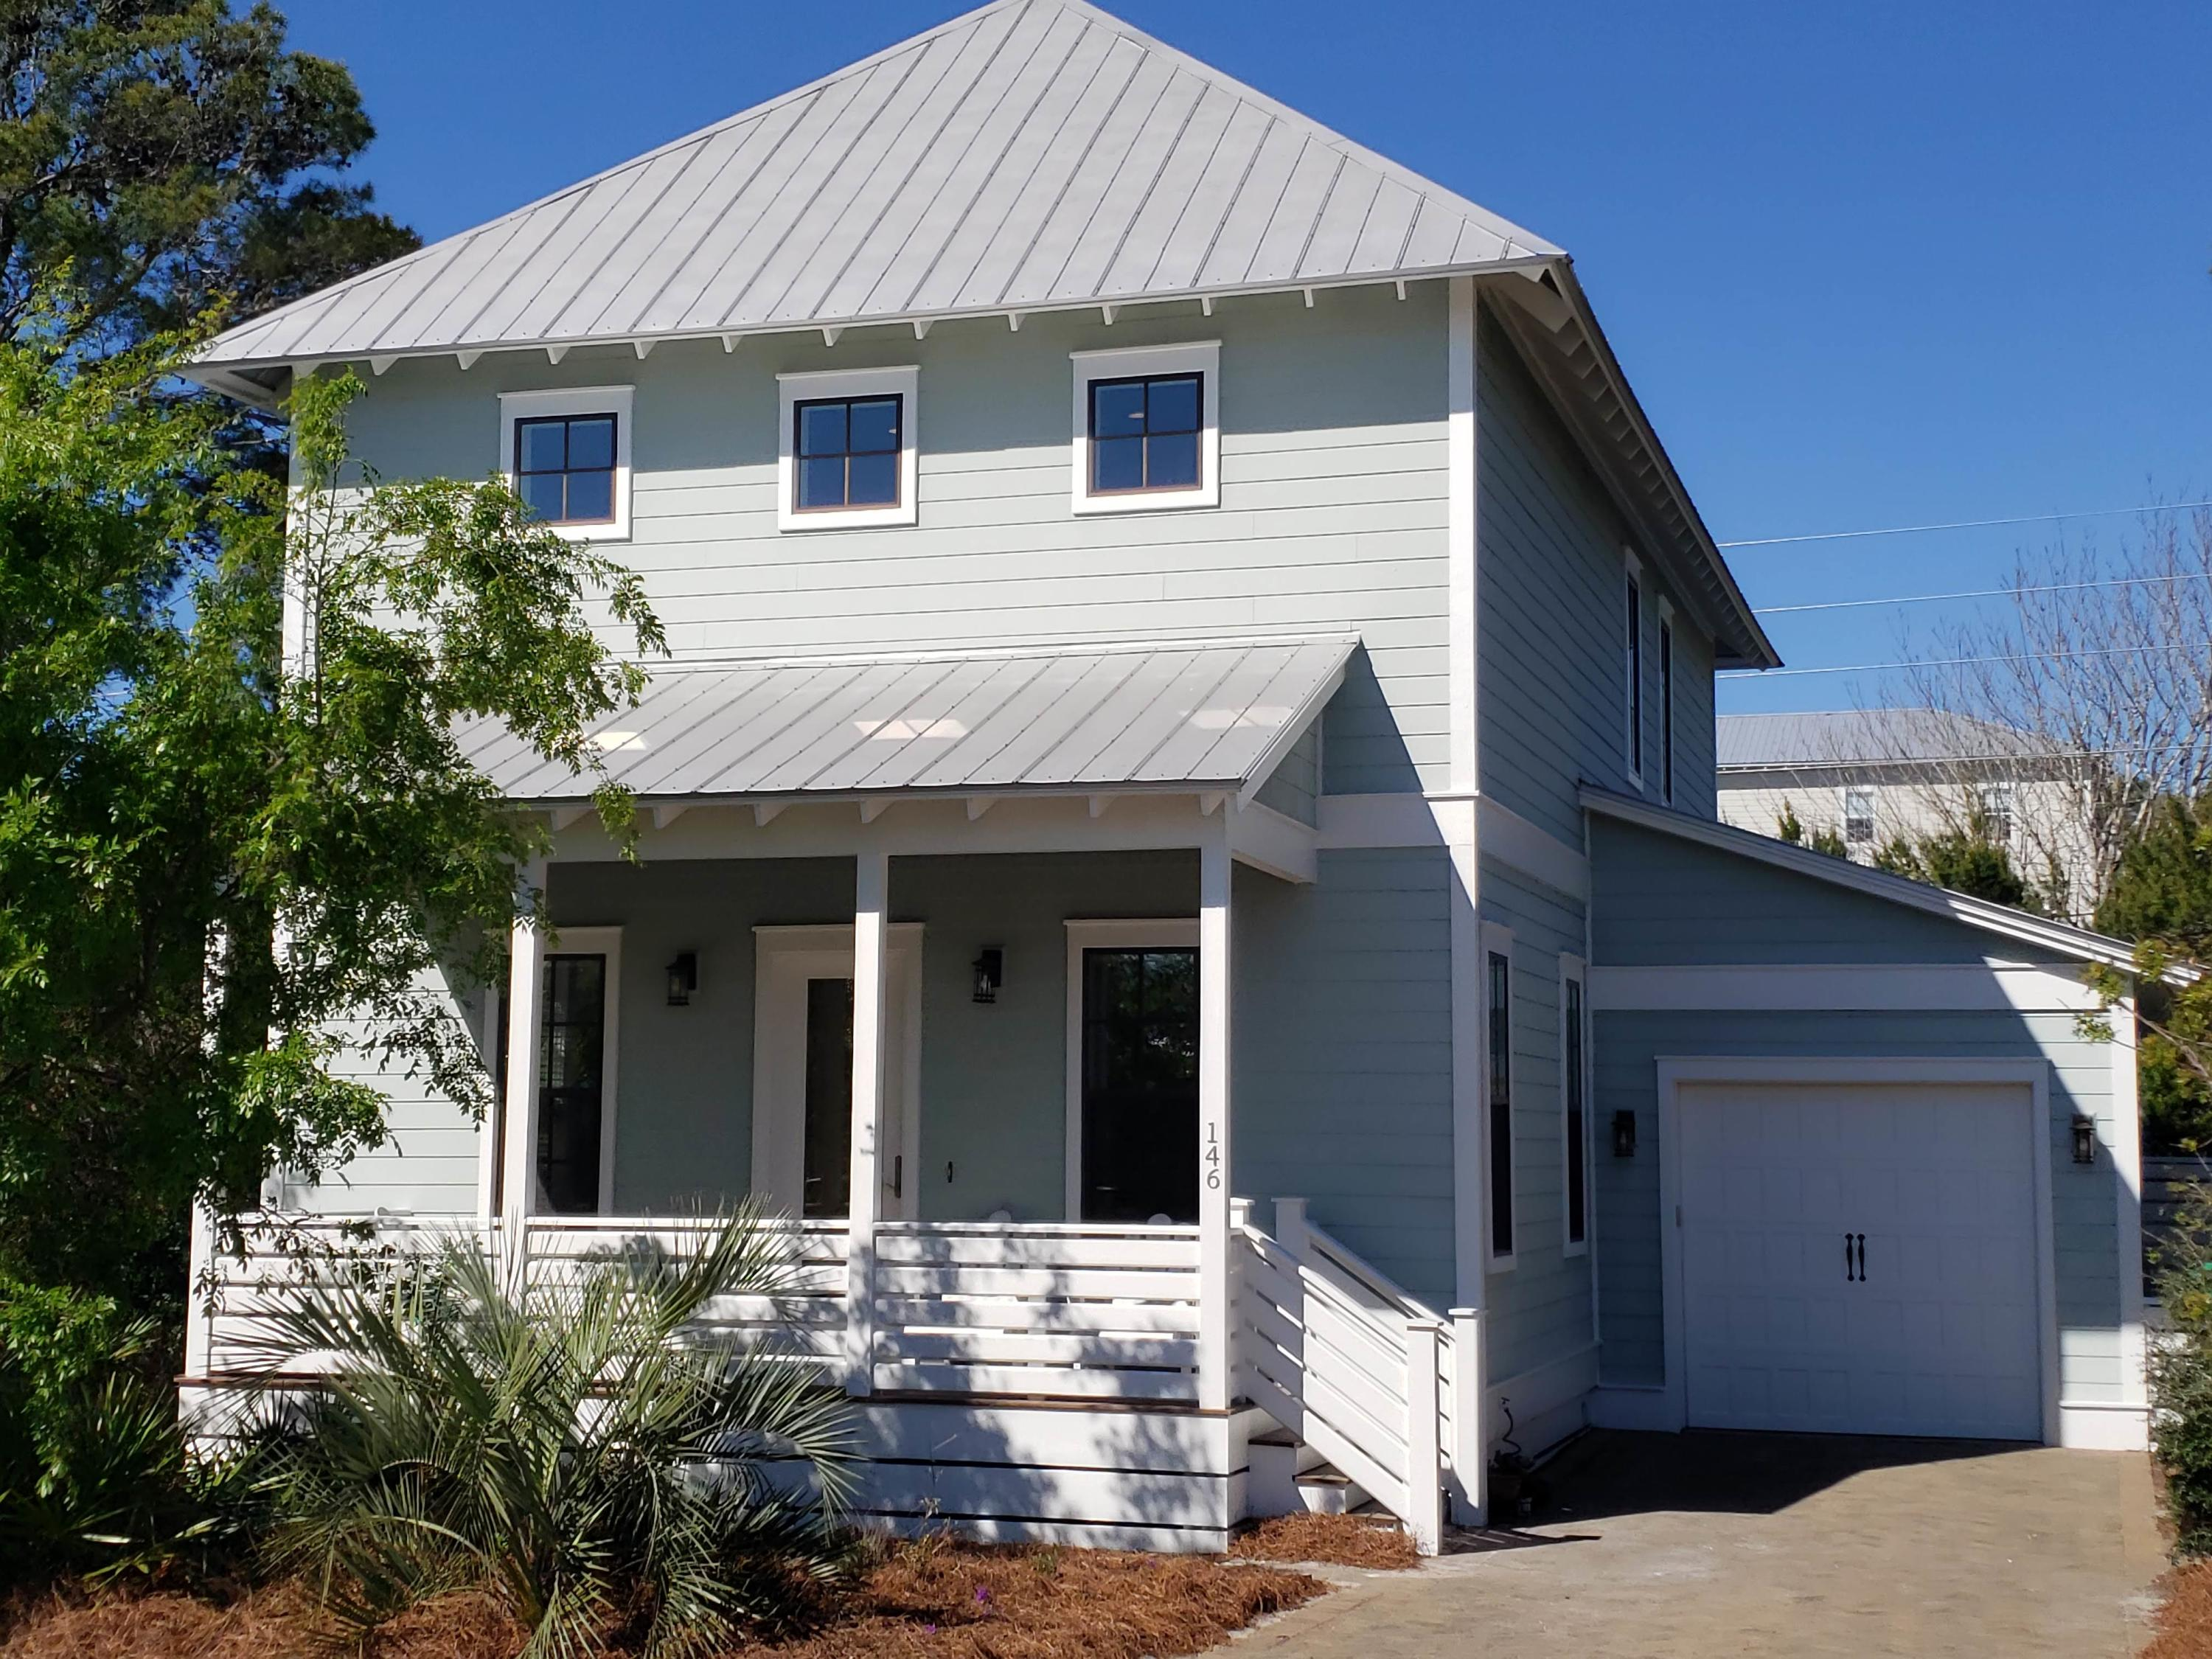 Located only two blocks to the beach, this neighborhood on Big Redfish Lake, is nestled between the State Forest with hiking and biking trails, and Redfish Village which offers shops, dining and much more. Easy to get to so many places in Blue Mountain Beach from this beach cottage. Inside, the 21 foot architectural beam ceiling invite you in to the open floor plan with living and dining in front, and spacious kitchen just beyond. SS Kitchen Aid appliance including ice machine. The master suite, laundry room and half bath are also on first floor. Varying-width solid oak flooring is throughout this home, with travertine flooring in bathrooms. 10 ft ceilings with crown molding and 8ft solid-core doors throughout the home. The details of this home truly stand out from the others in the area.